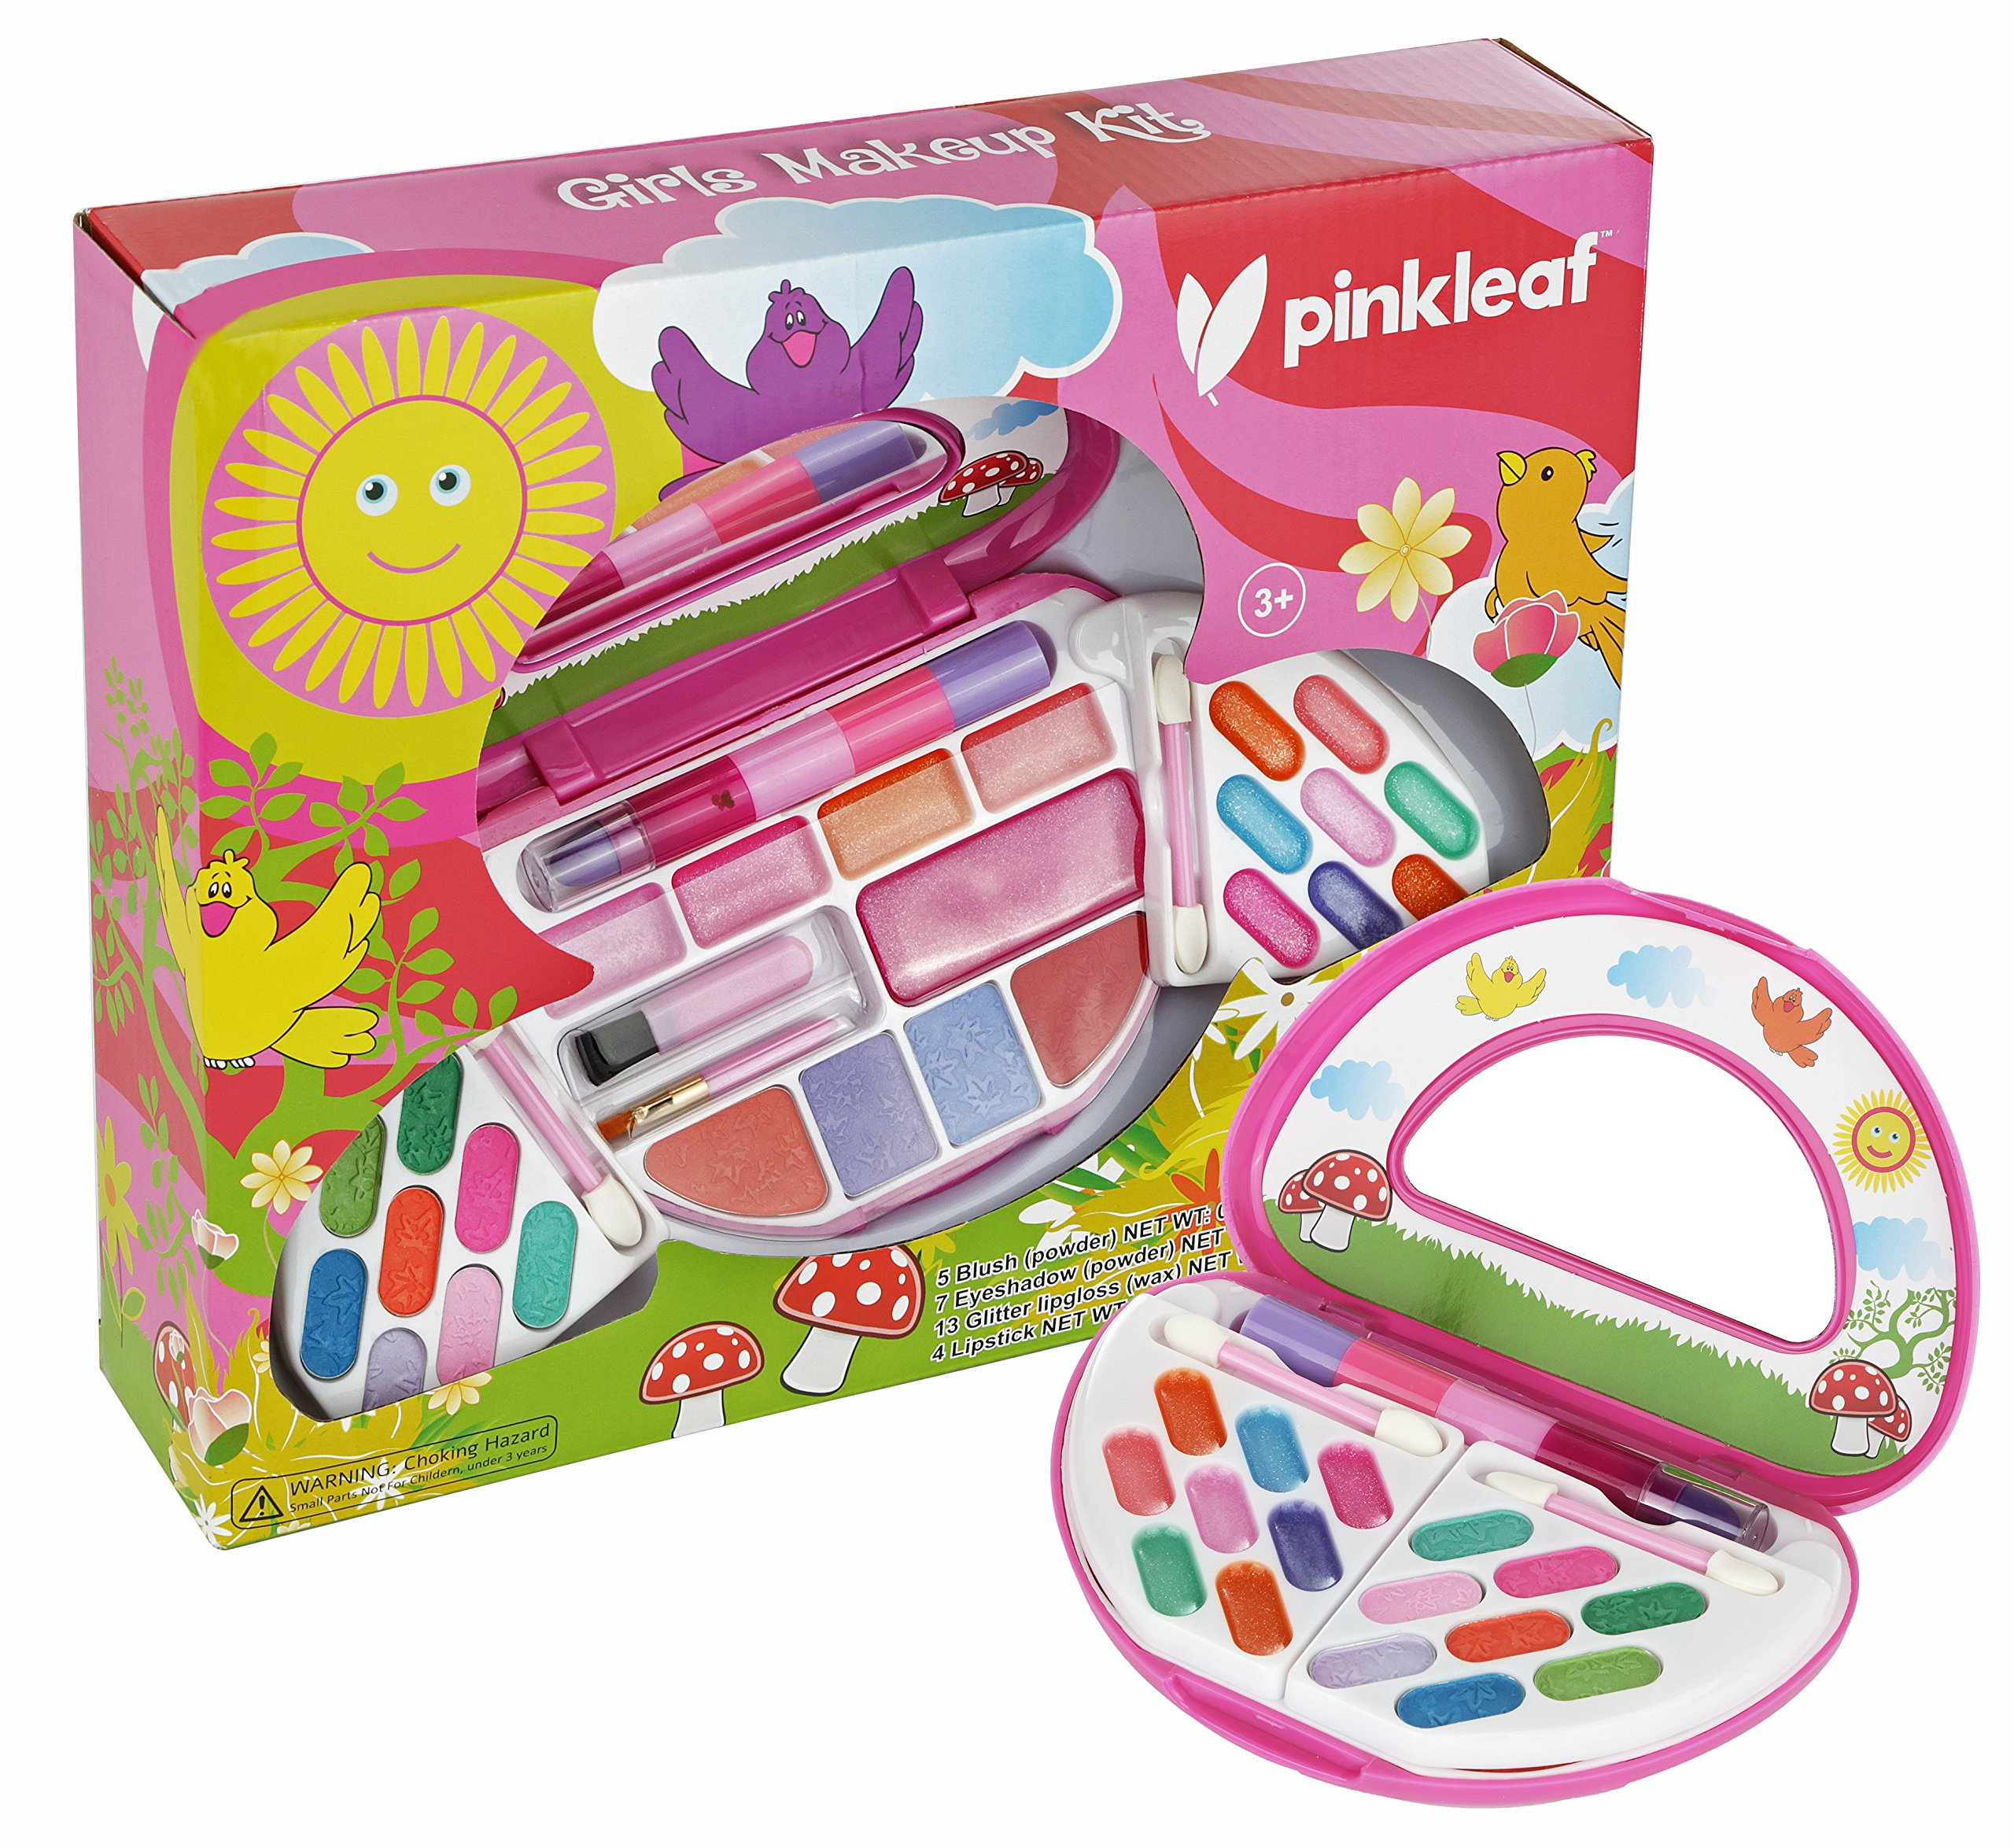 Kids Makeup Kit for Girls - Toddler Toys - Safe & Non-Toxic Cosmetics for Toddlers & Preschoolers – Pink Folding Cosmetics Palette Gift Set with Small Beauty Mirror, Washable Makeup Set